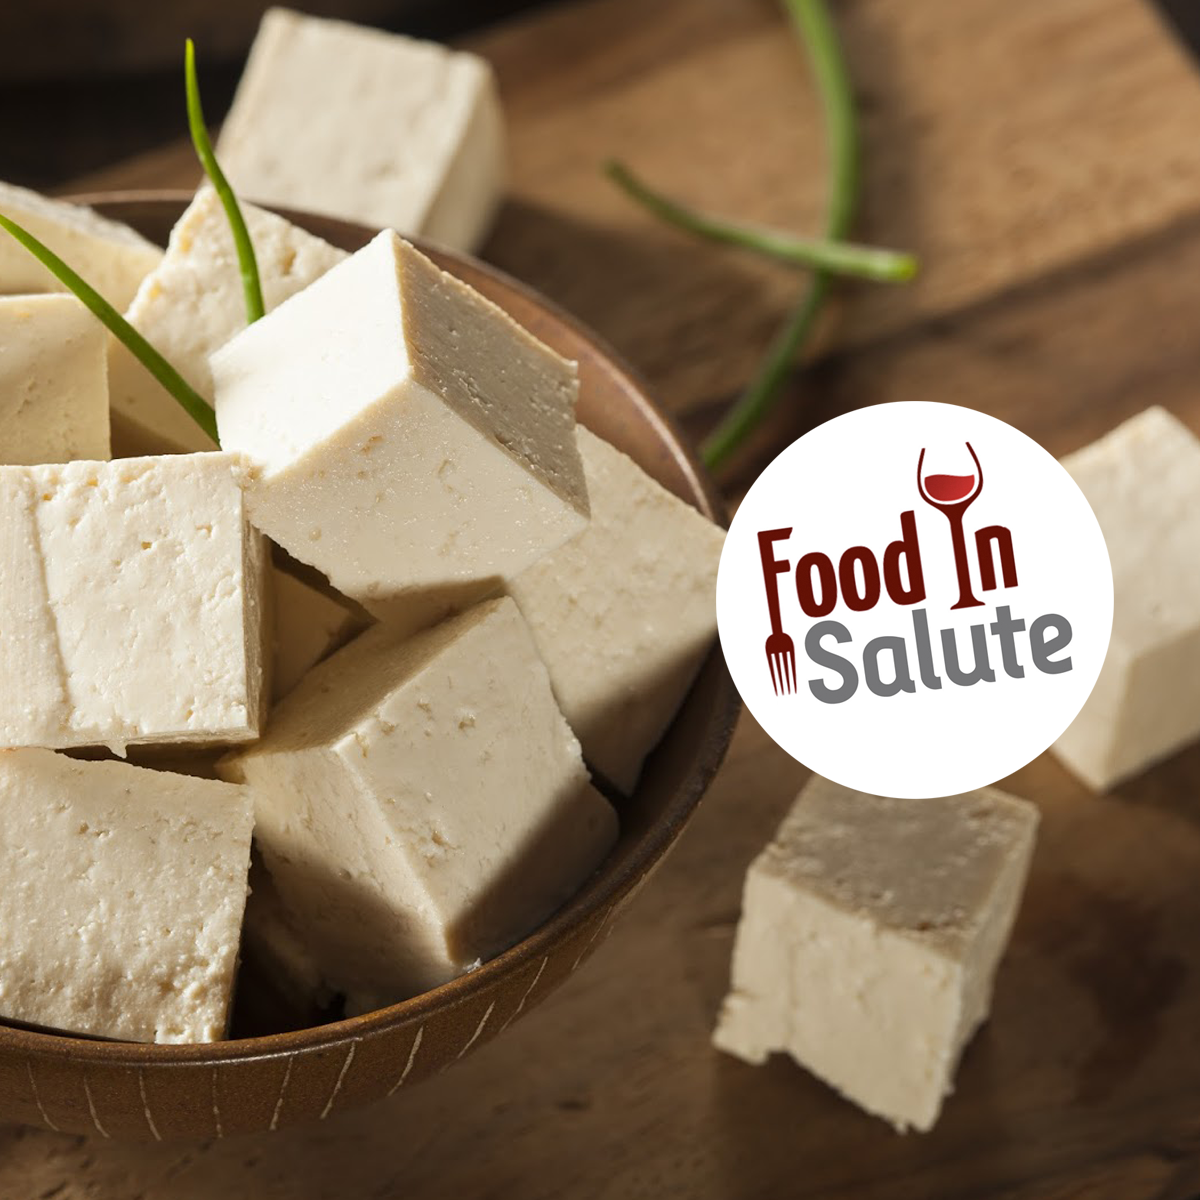 FOOD IN SALUTE - IL TOFU